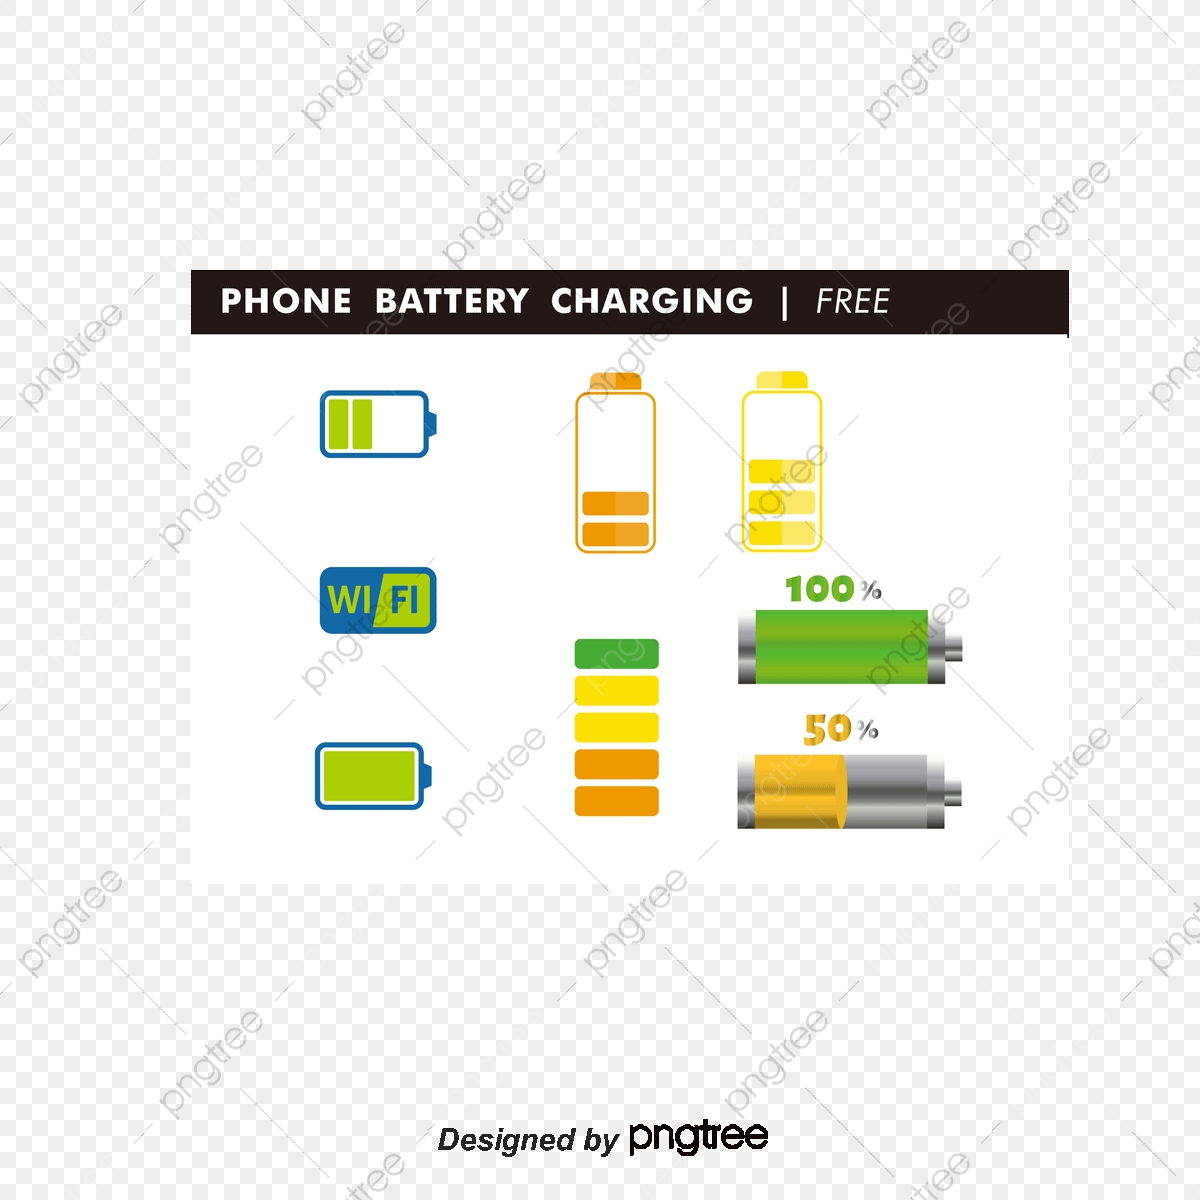 Low Battery Lithium Battery Battery Rechargeable Battery Png Transparent Clipart Image And Psd File For Free Download